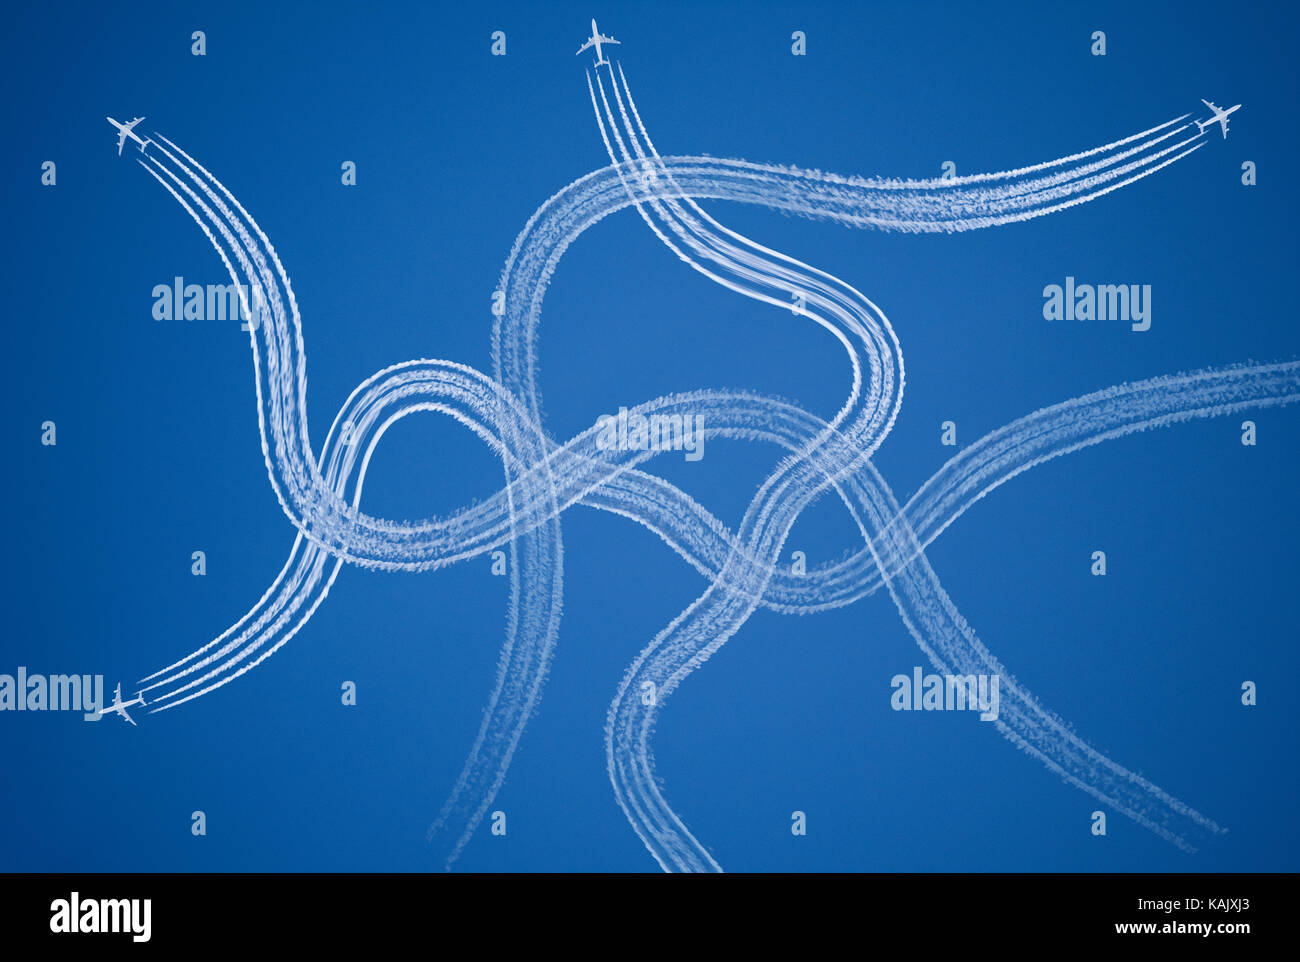 Chaotic, confused, stressful symbol of tangled aircraft vapor trails. - Stock Image